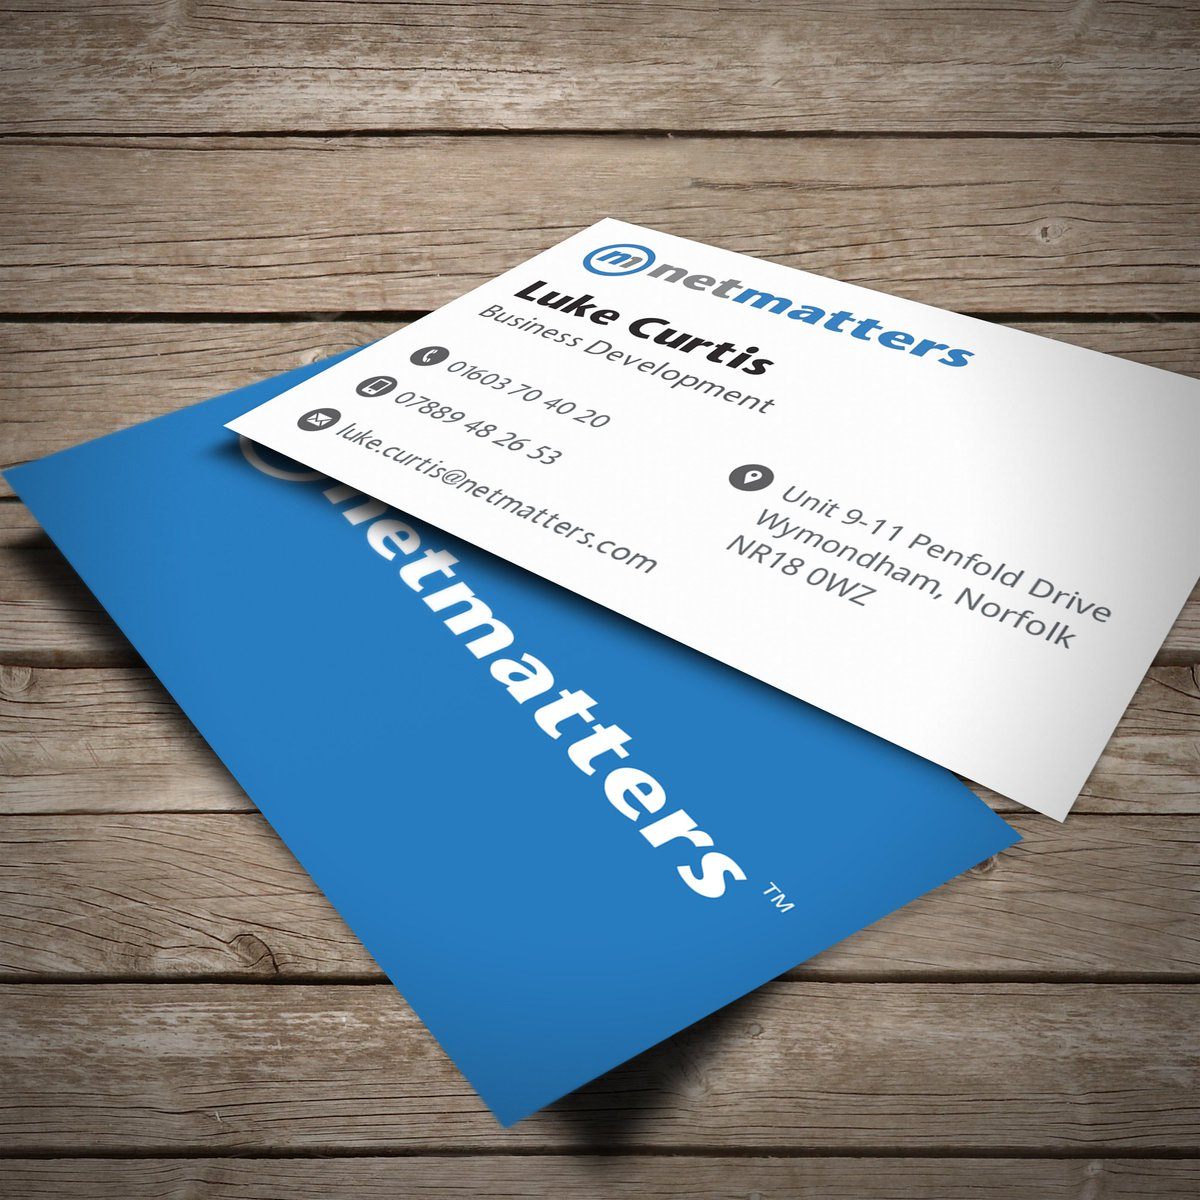 Display products ltd on twitter business cards for netmattersltd reheart Image collections